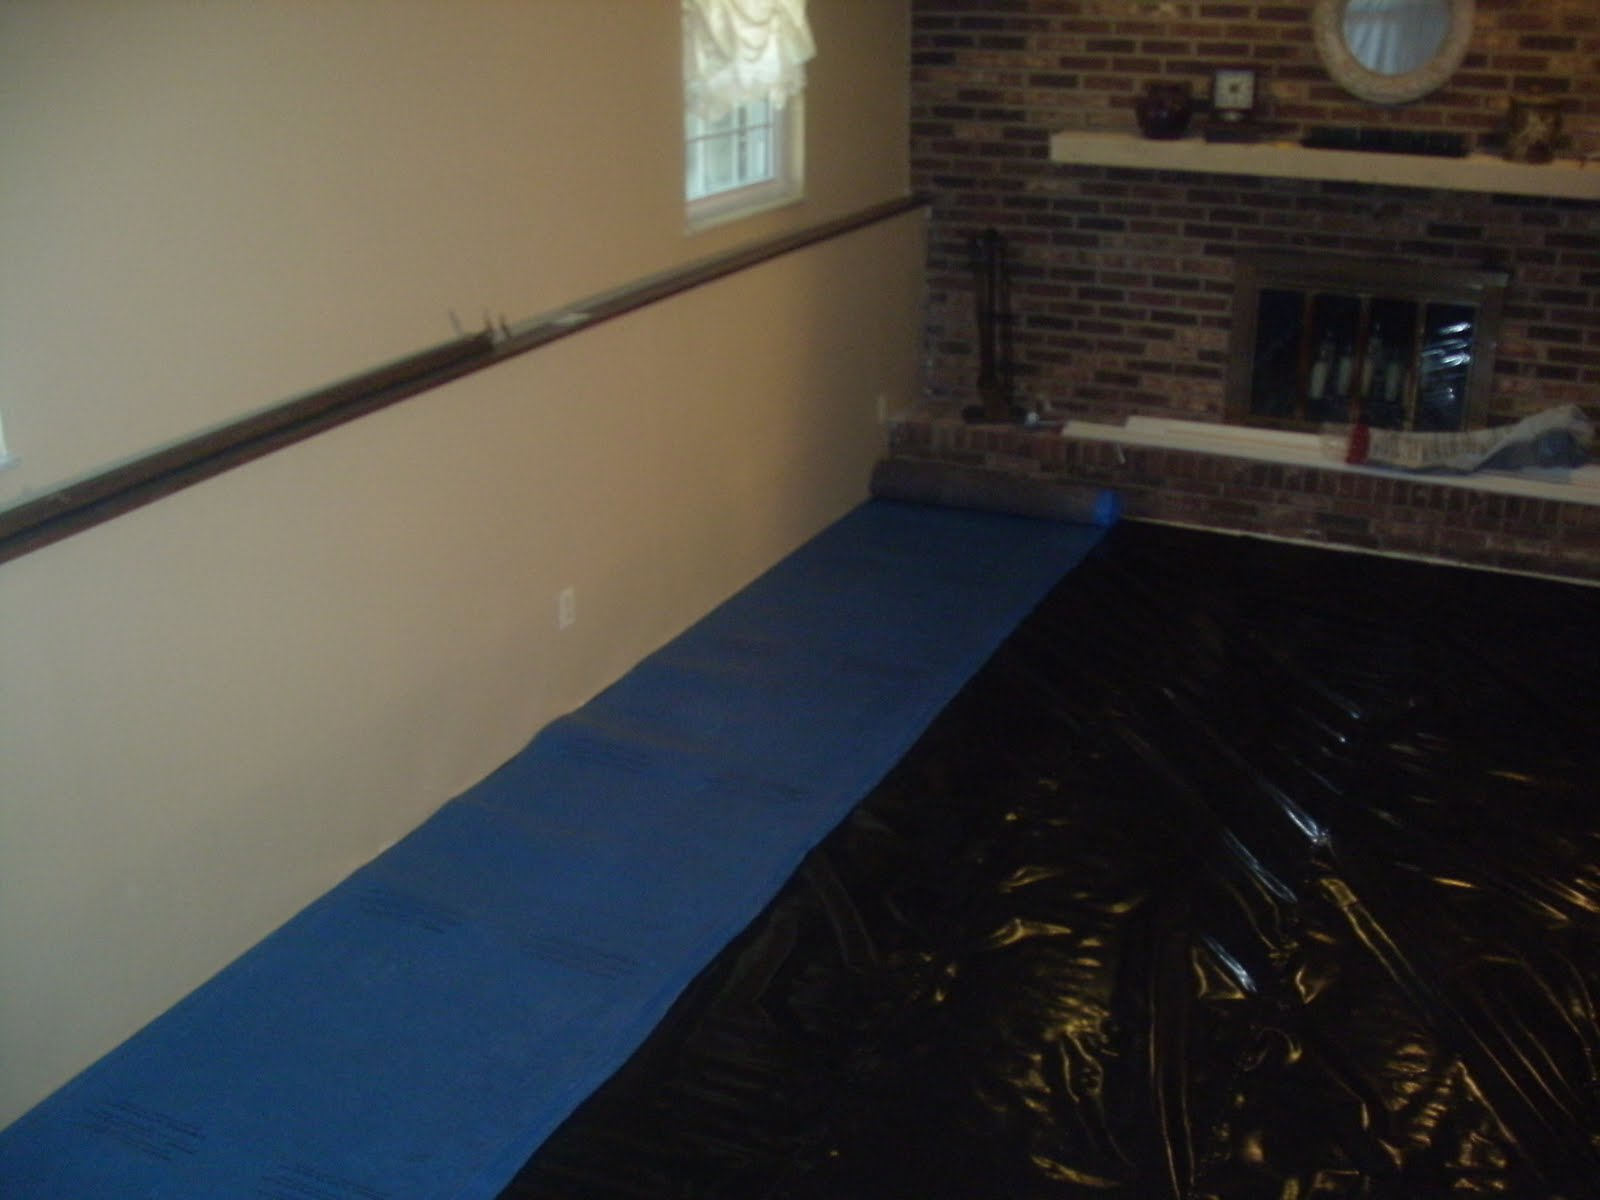 Should You Use Abrasive Or Smooth Tile In The Kitchen